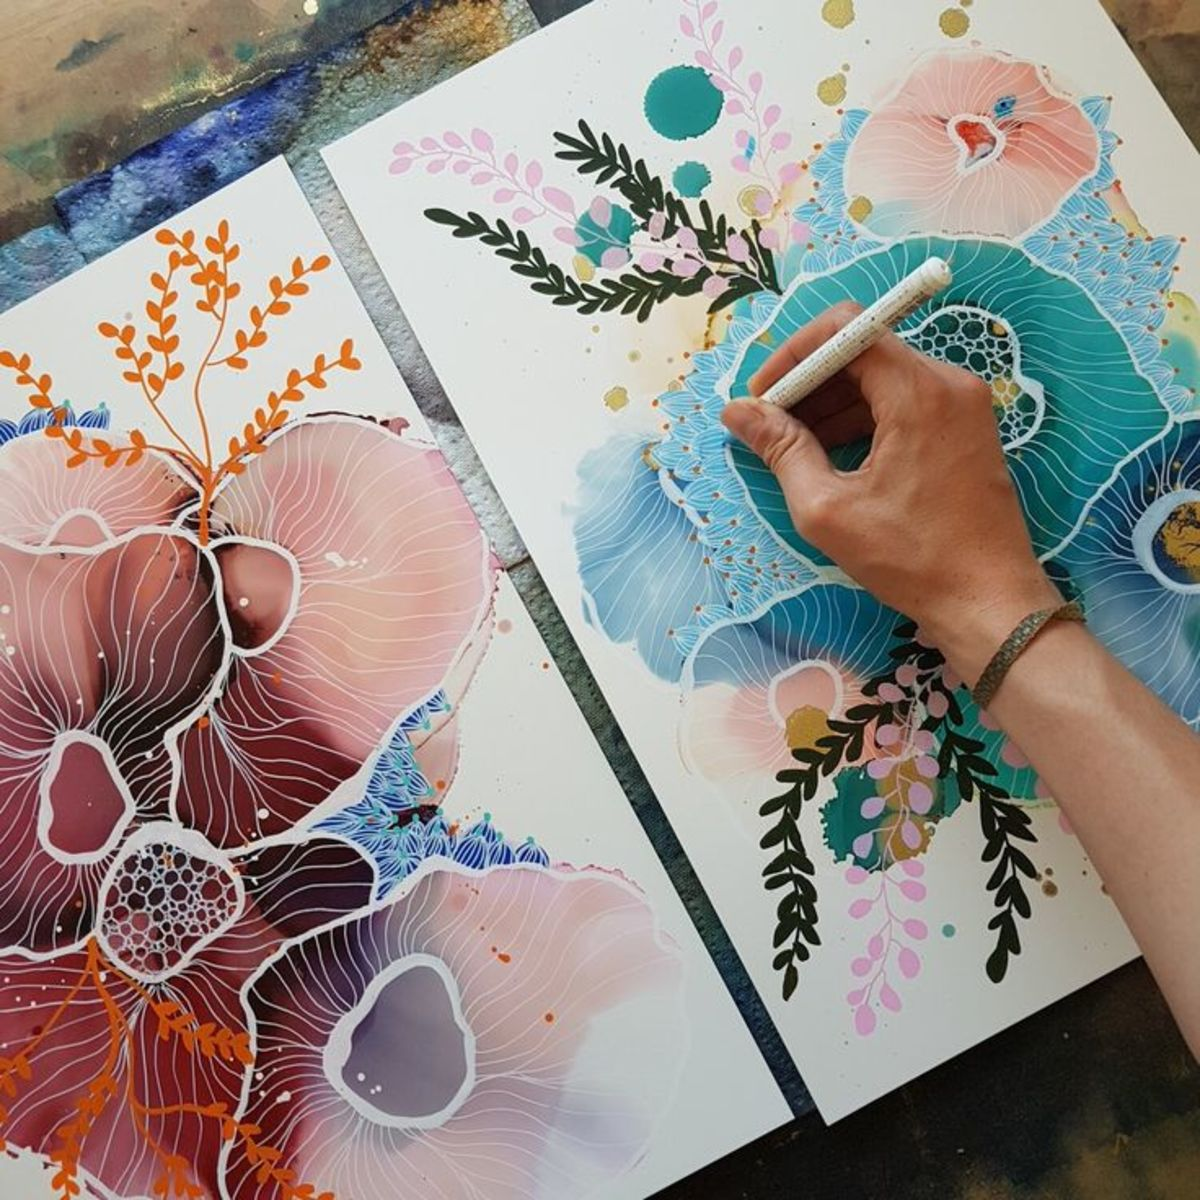 You can use alcohol inks on art journals and scrapbook pages. Learn how to draw on alcohol inks.